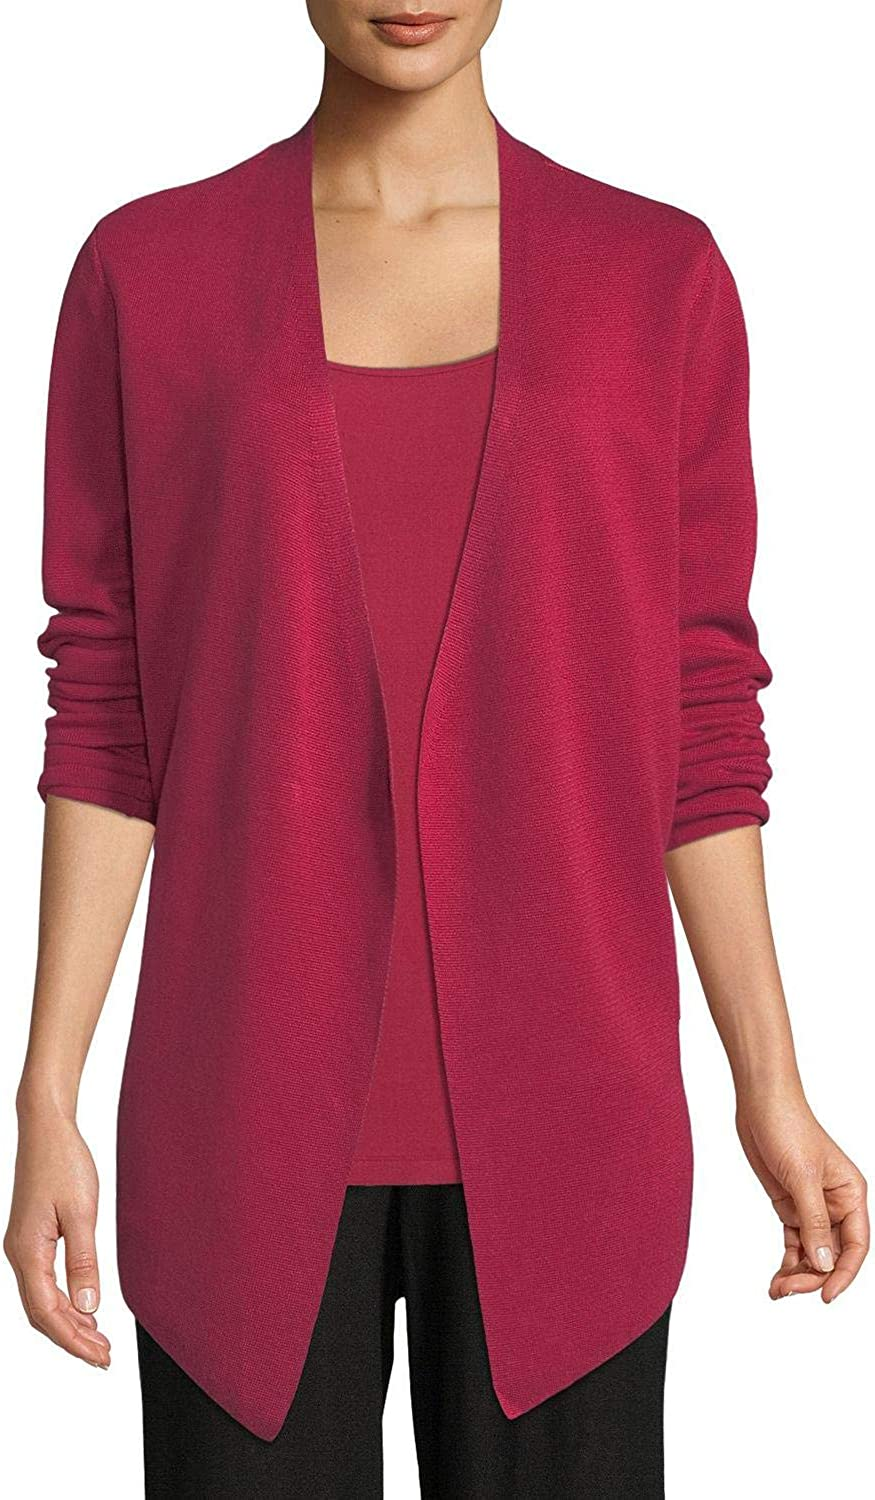 EILEEN FISHER Women's Silk Blend Angle-front Cardigan Sweater Top